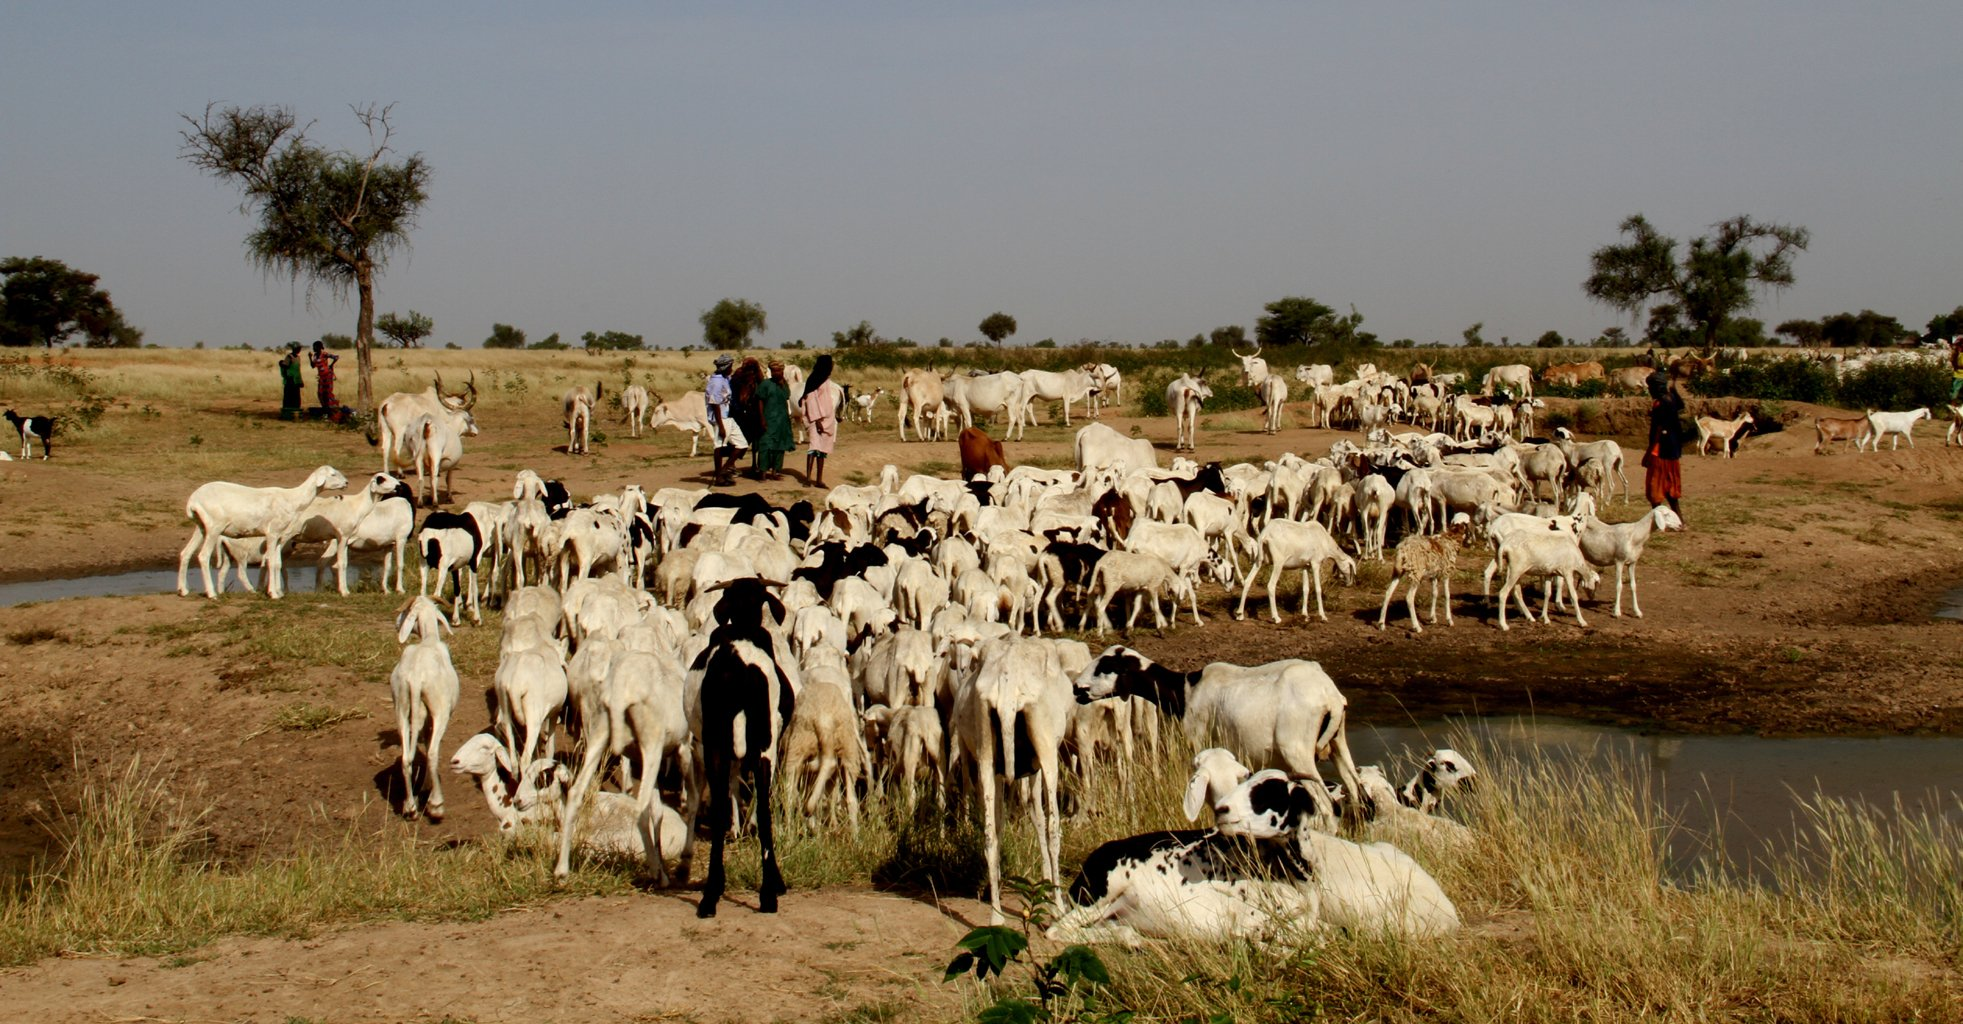 Fulani goat-herders in northern Senegal